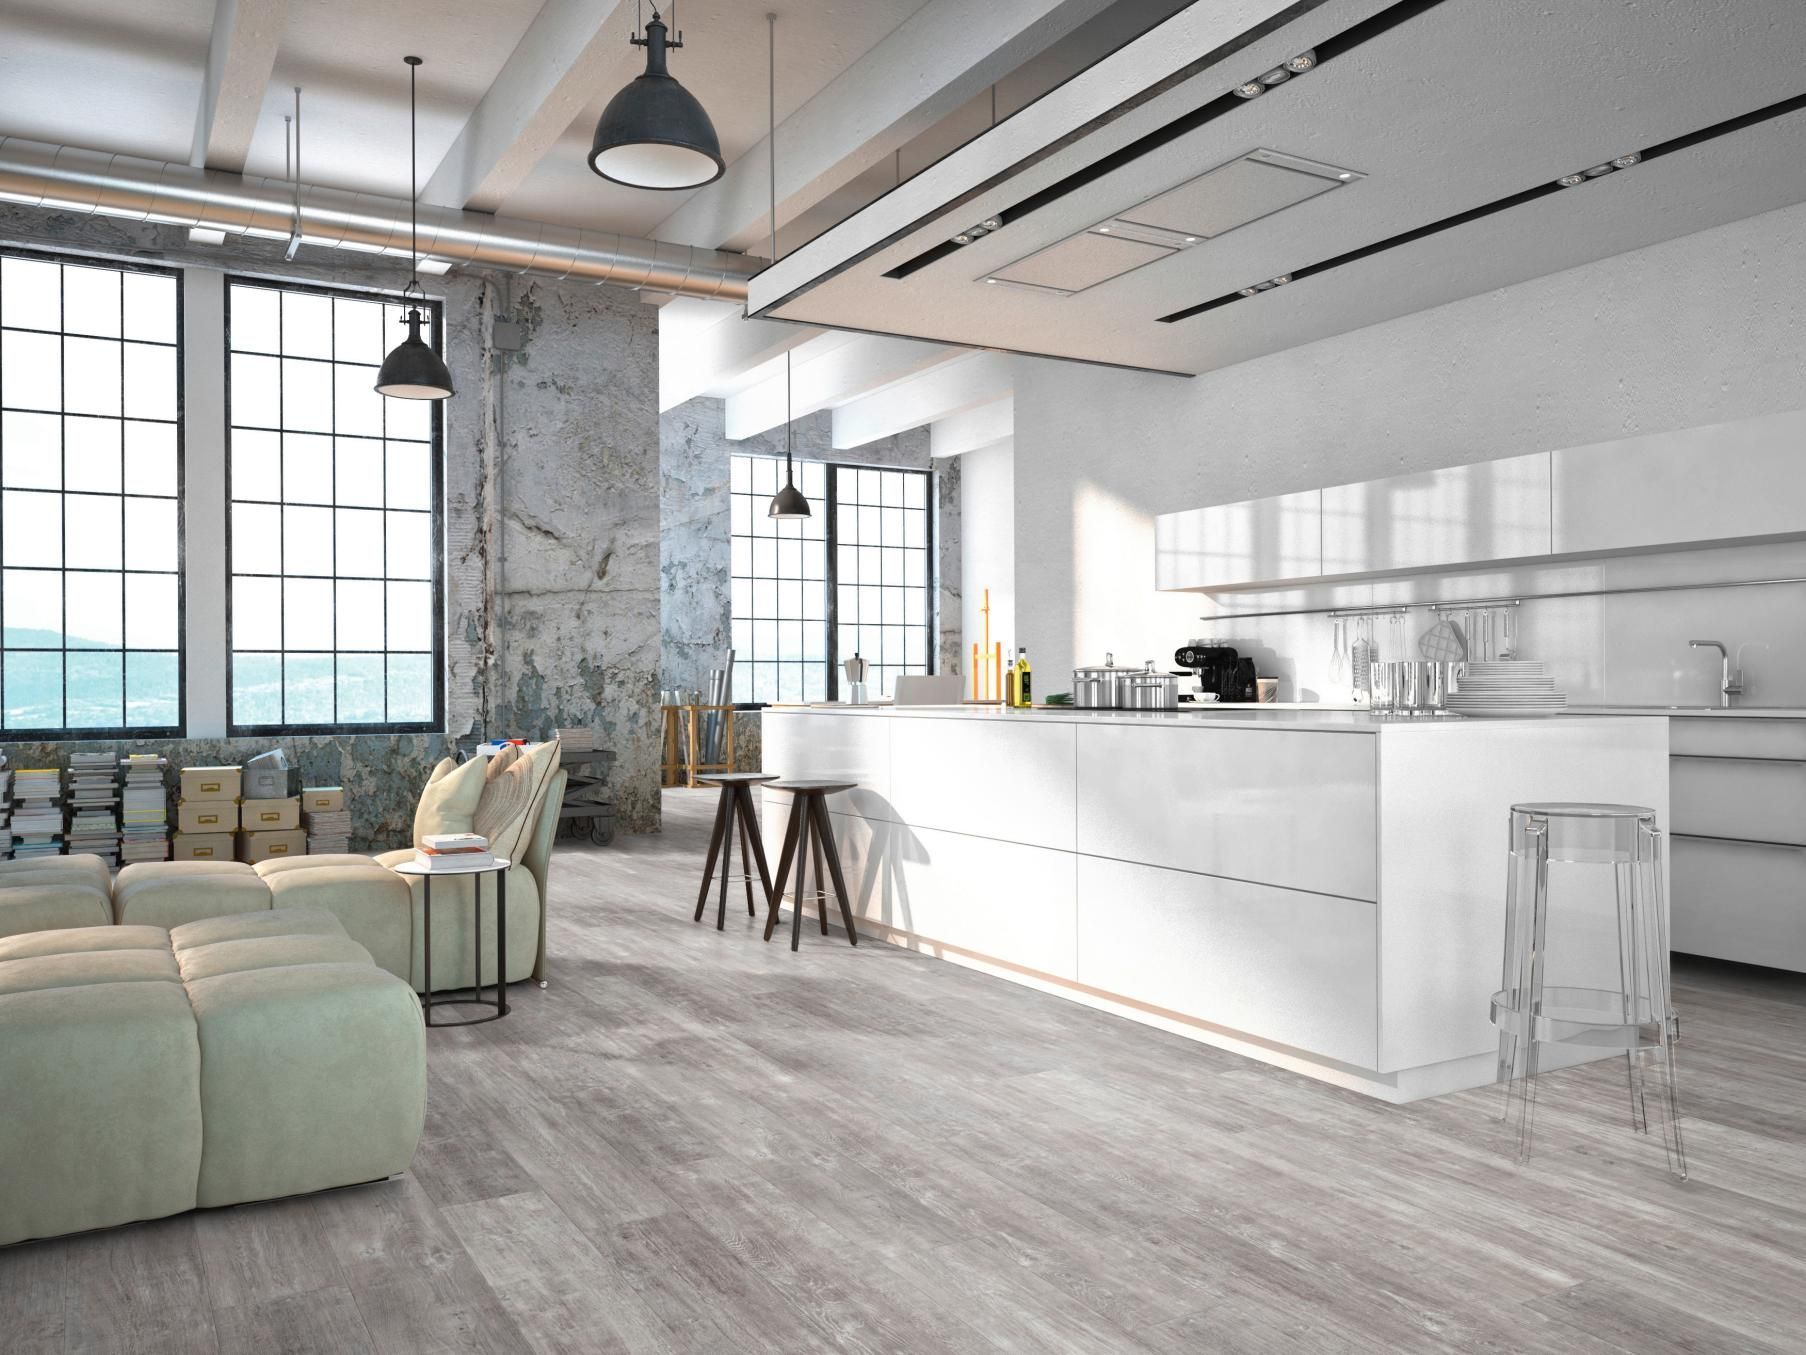 Sol vinyle virtuo clic b ton griff gris dalle 36 x 69 6 - Decoration loft industriel ...